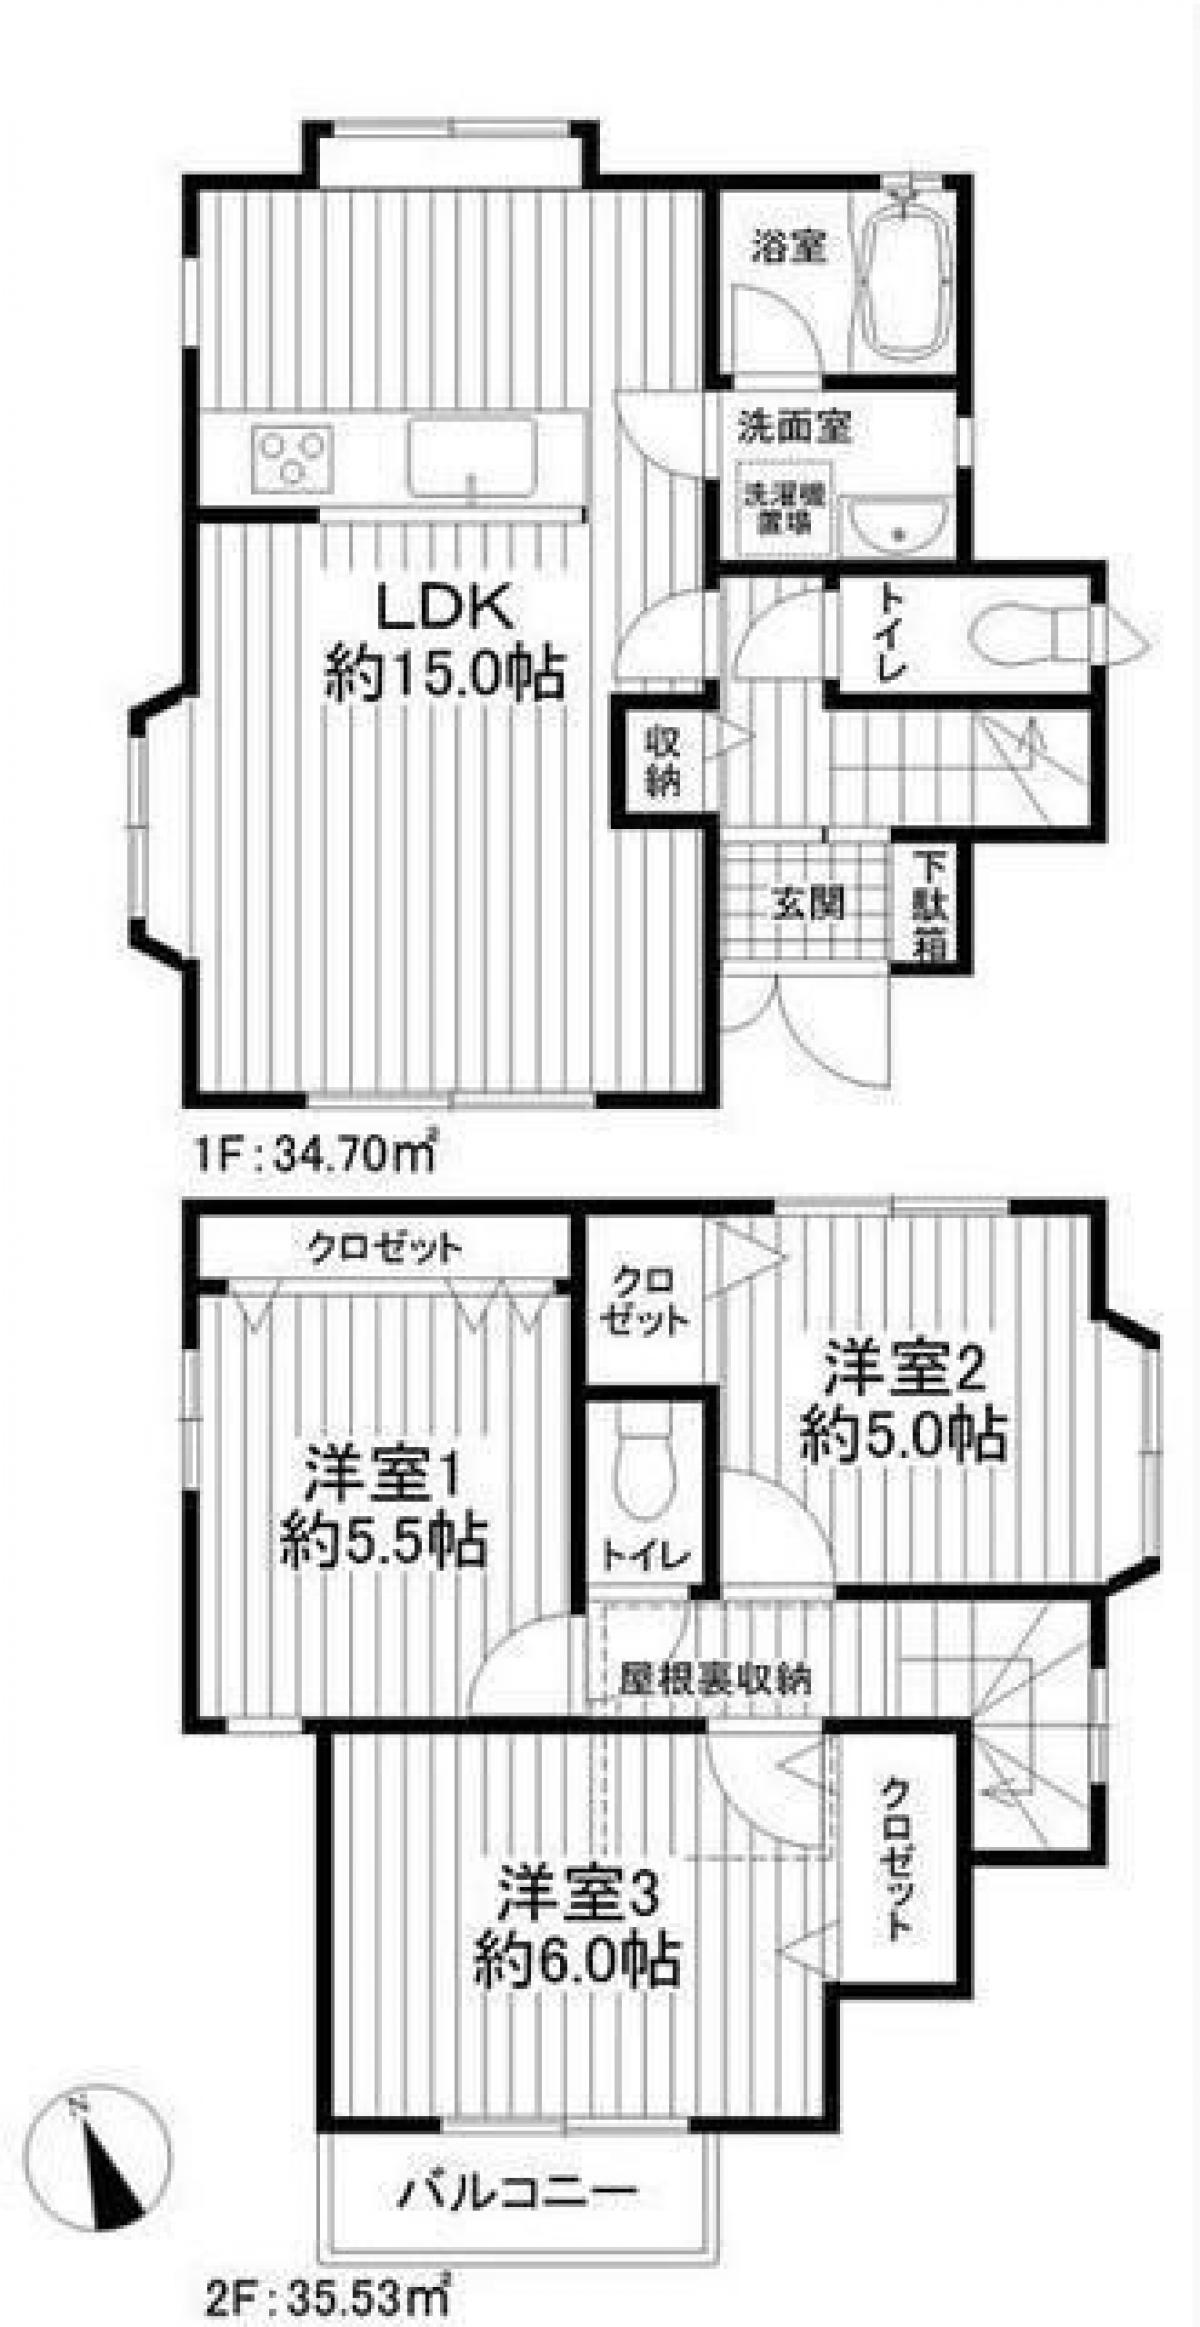 Property listed For Sale in Ebina Shi, Japan